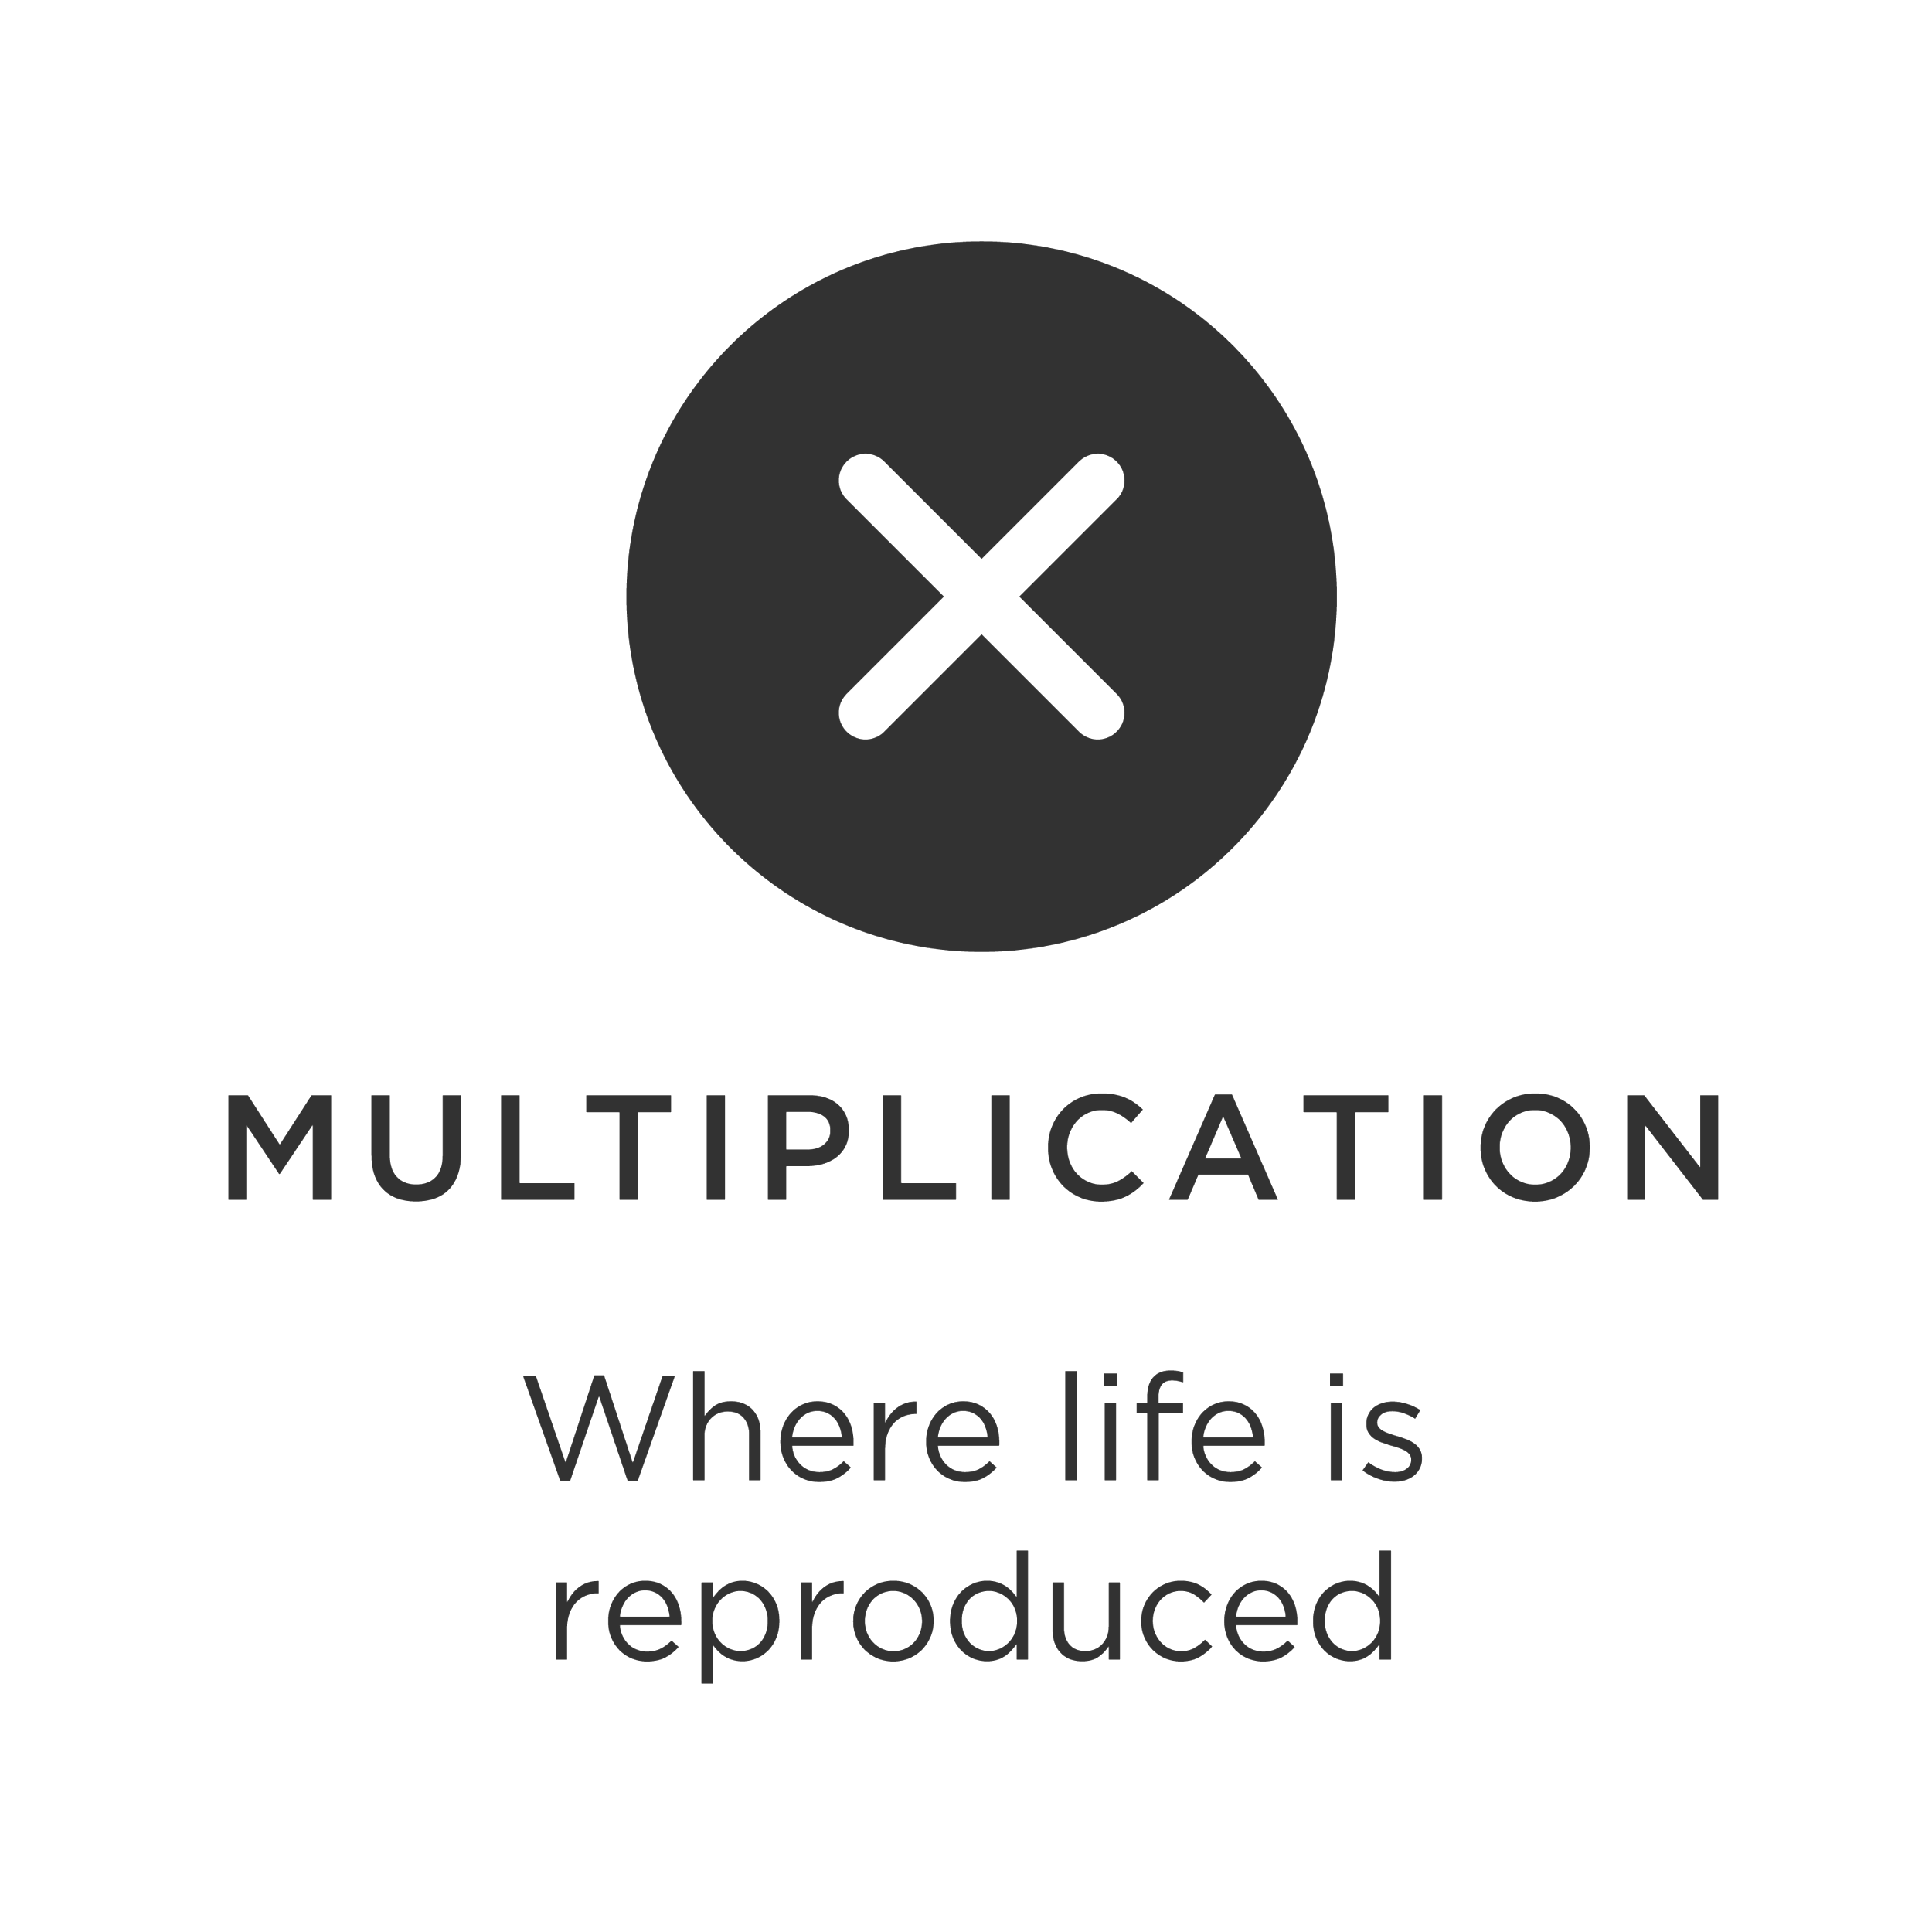 Multipication-01.png